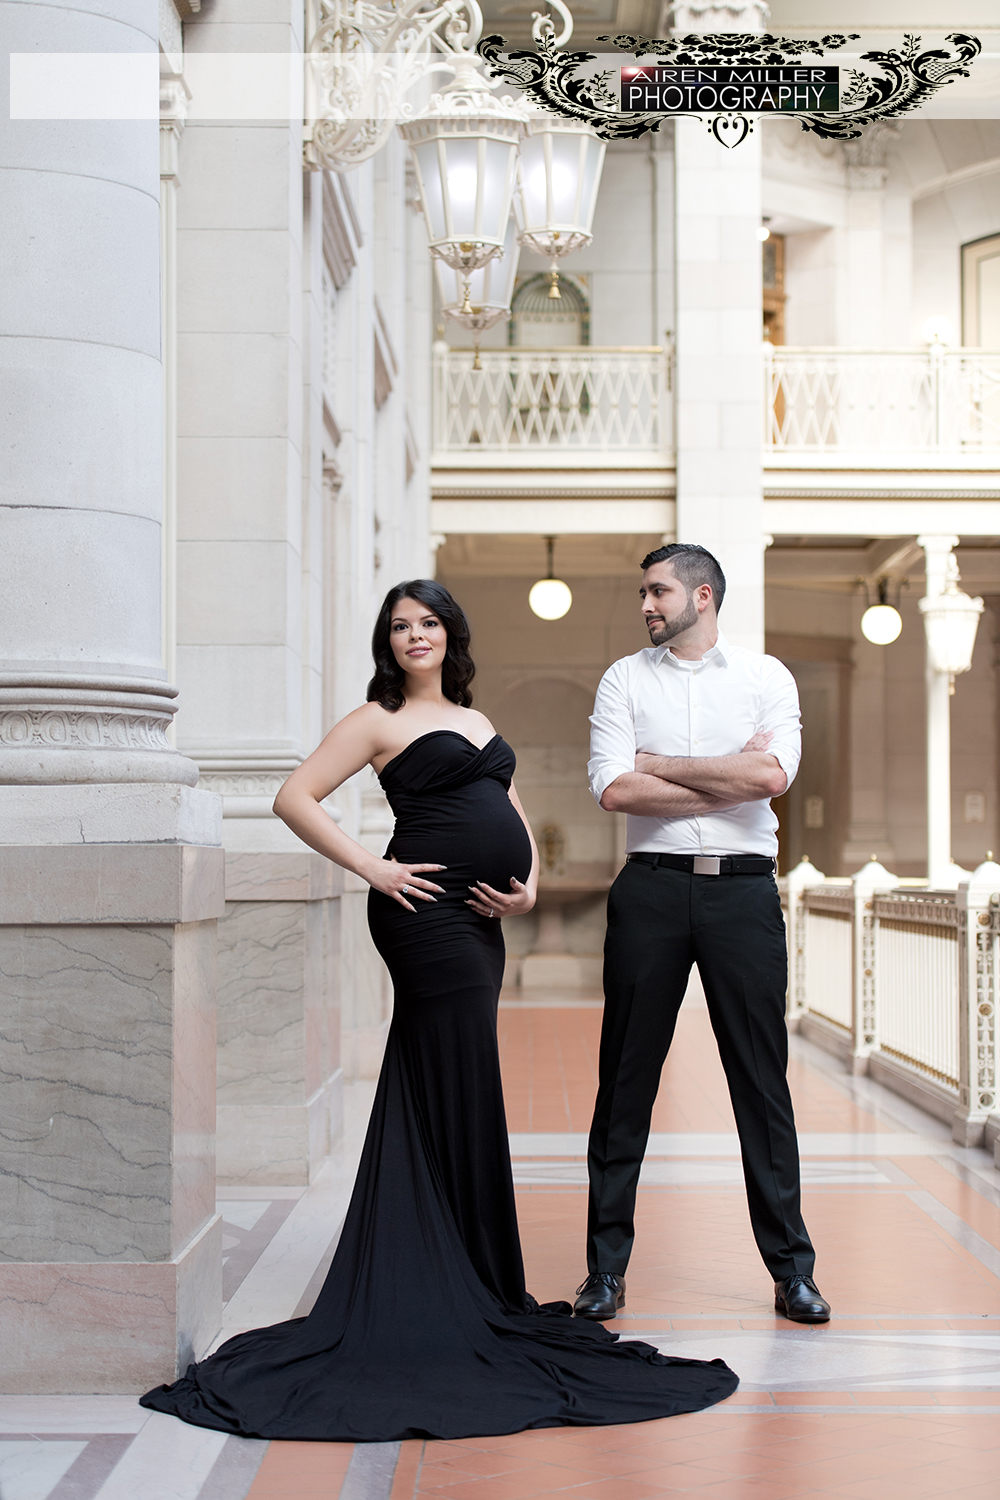 Best Connecticut Maternity photographer